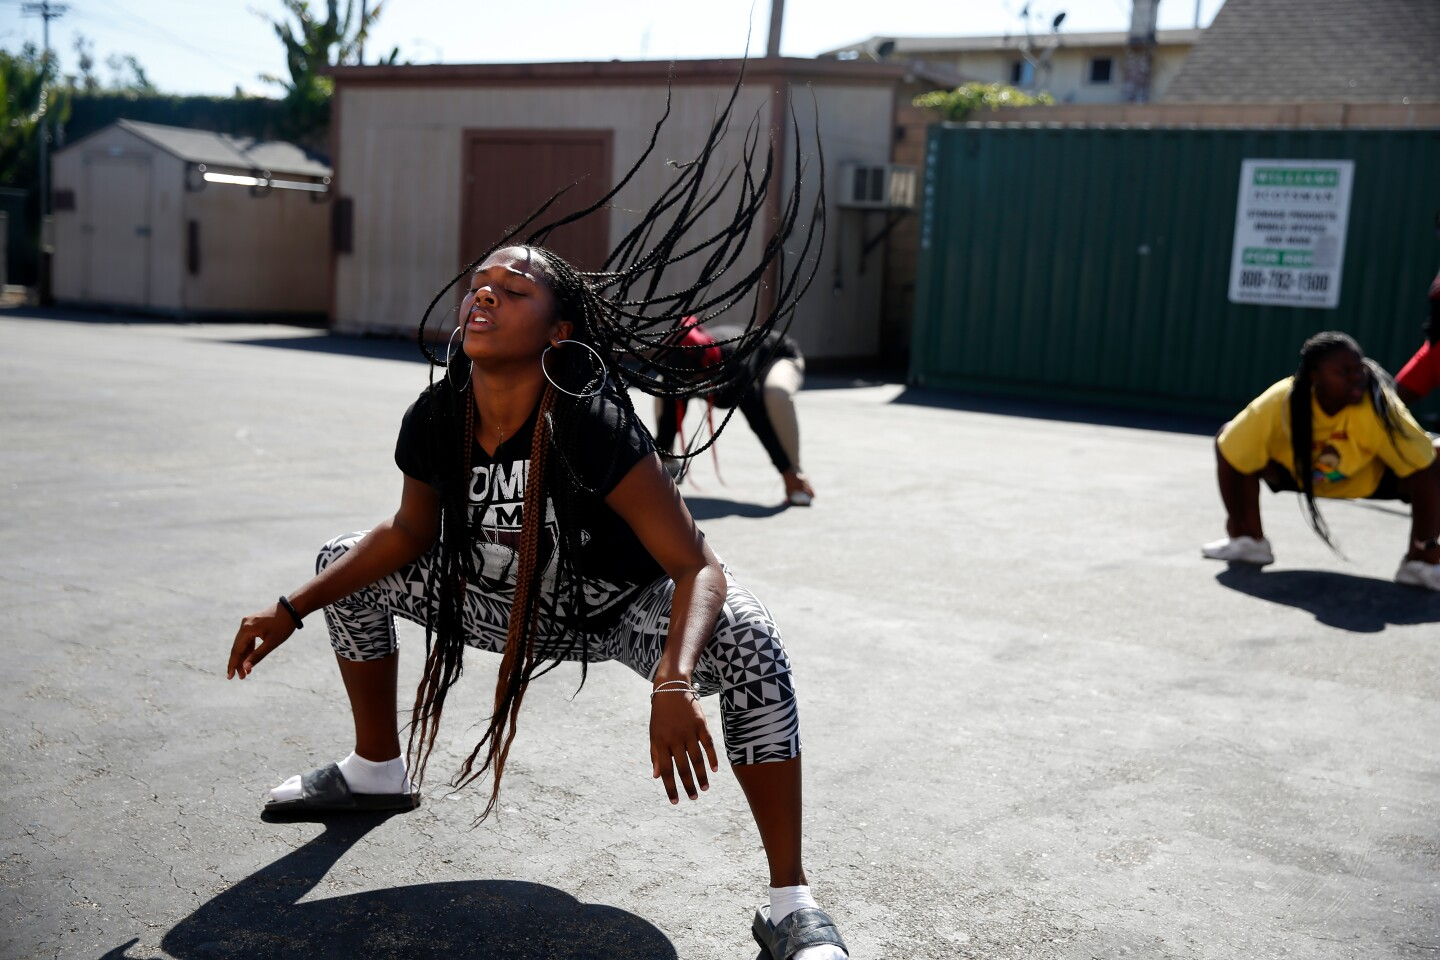 LOS ANGELES, CA-AUGUST 26, 2019: Kamryn Johnson dances with classmates after school on August 26, 2019 in Los Angeles, California. She is a student at ICEF View Park Prep Charter High School, across the street from the Marathon store where Nipsey Hussle was shot and killed earlier this year. (Photo By Dania Maxwell / Los Angeles Times)